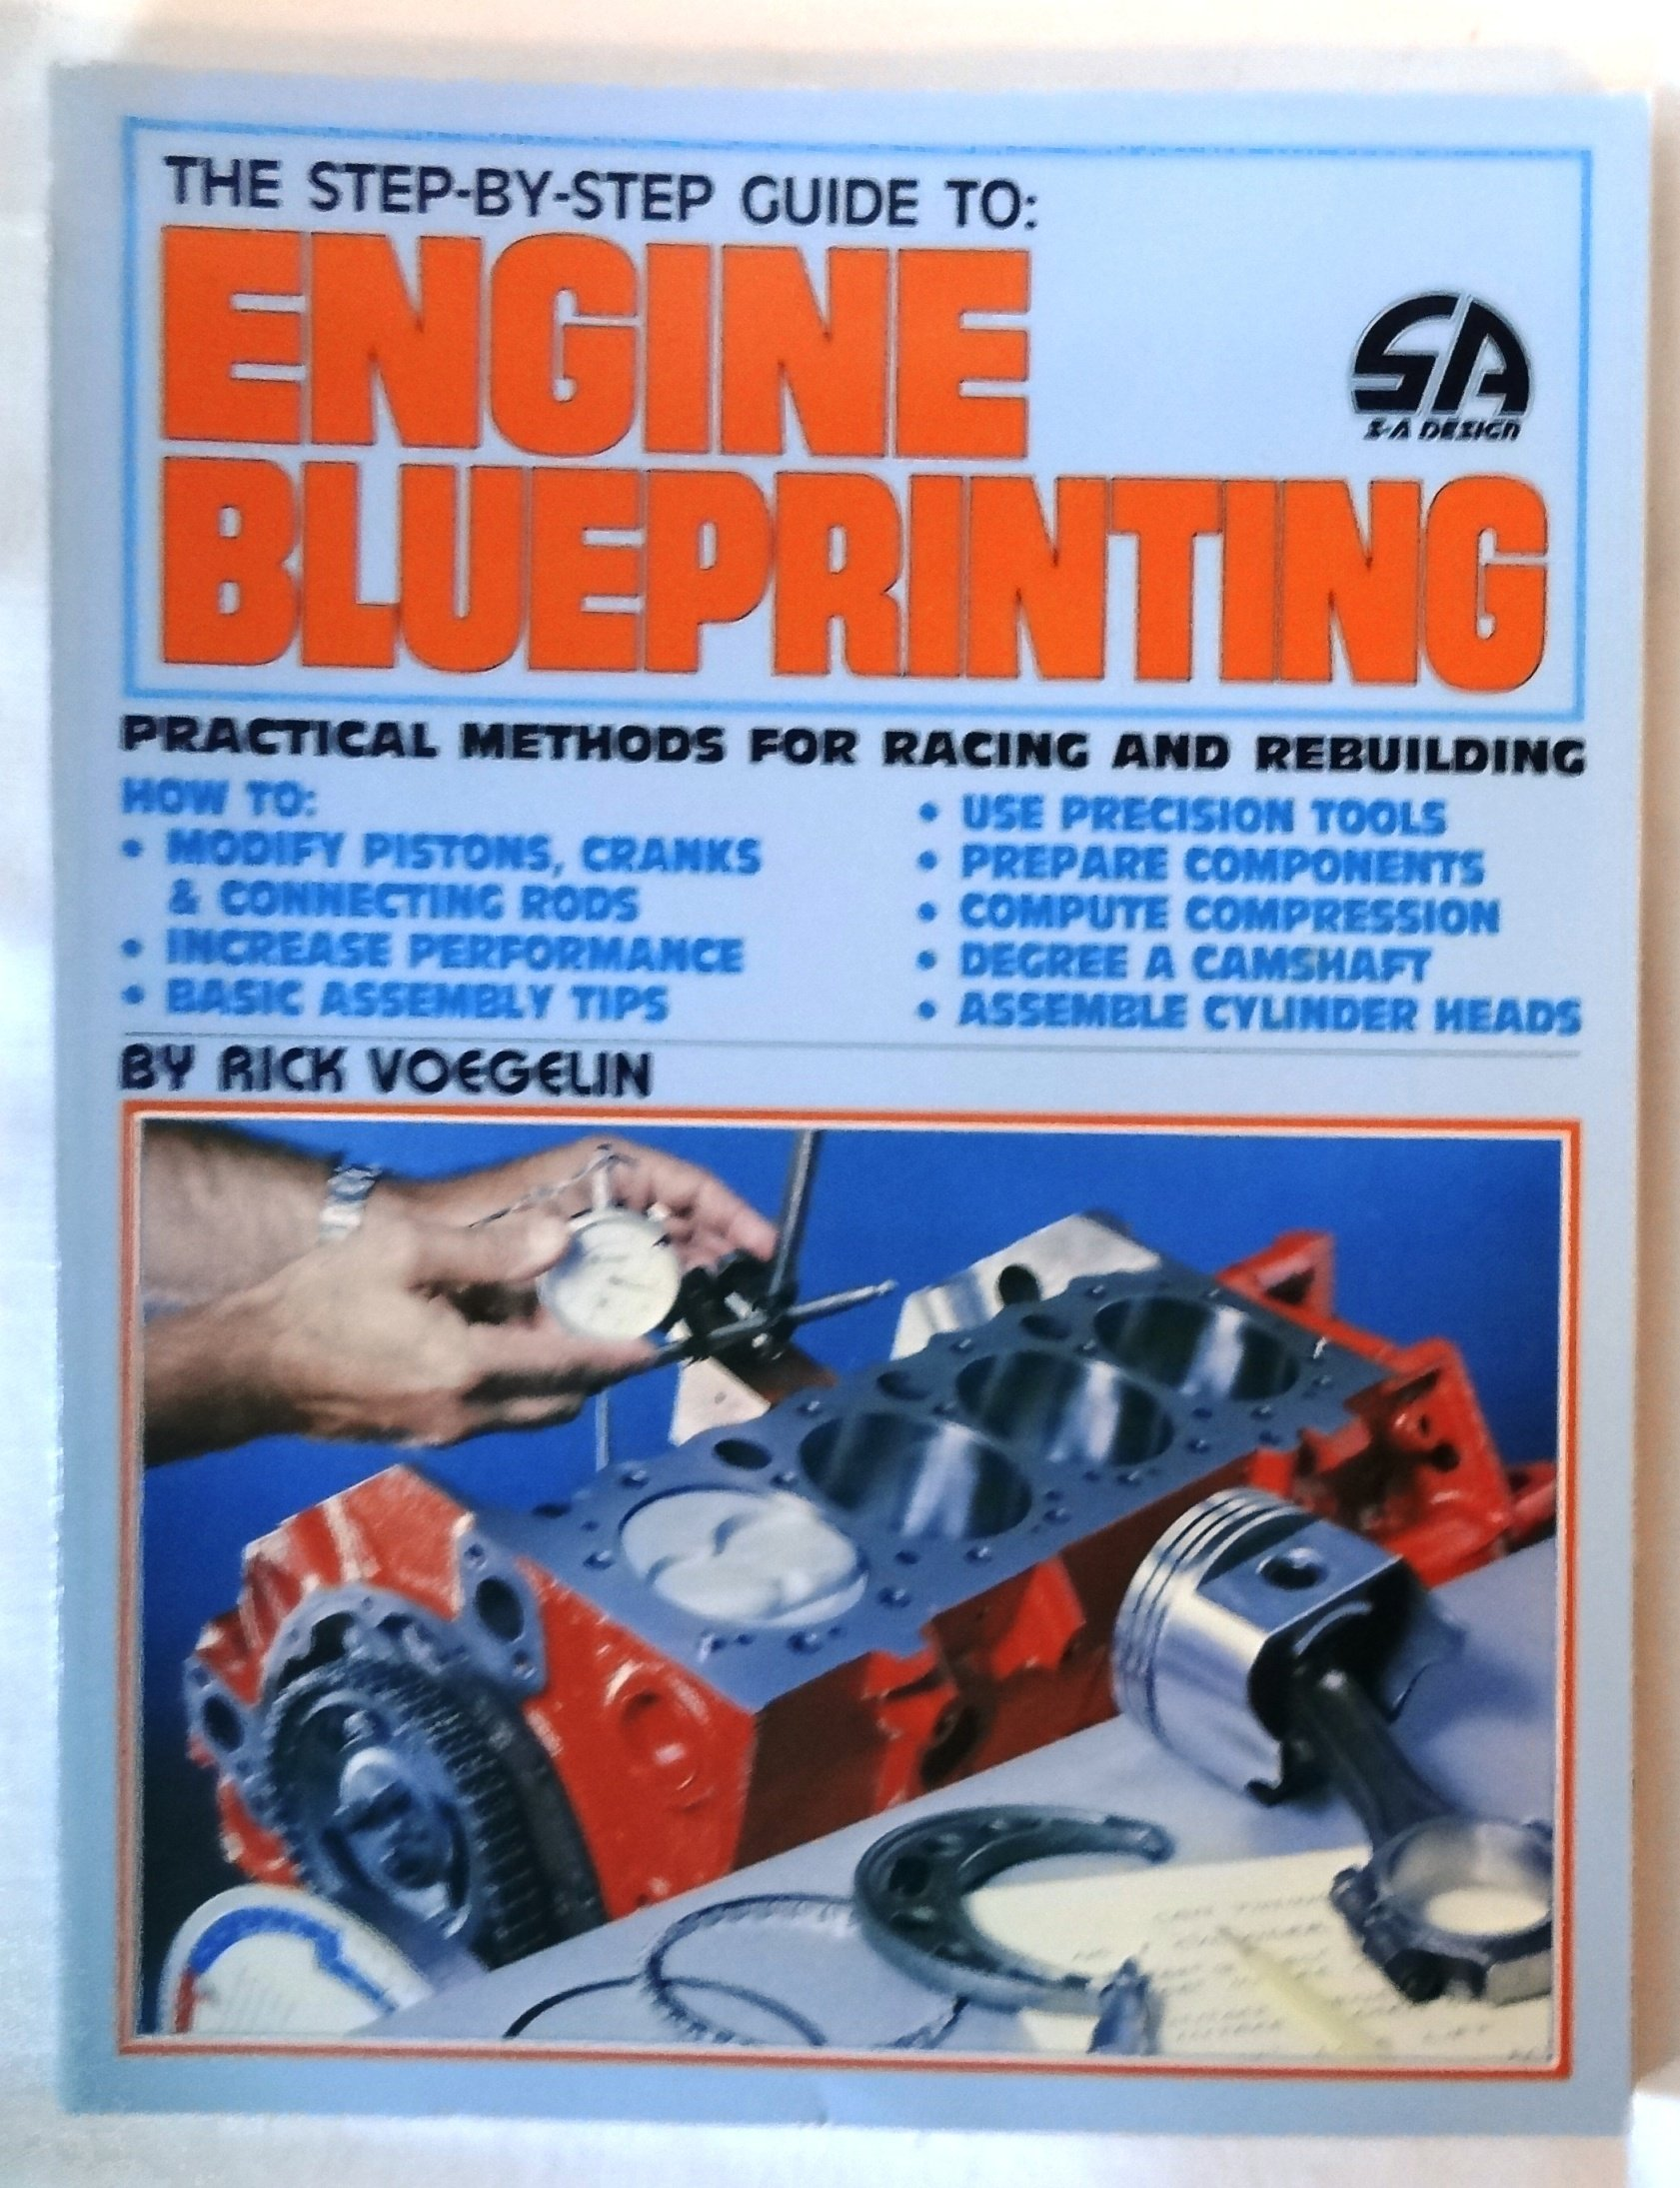 The Step-By-Step Guide to Engine Blueprinting Practical